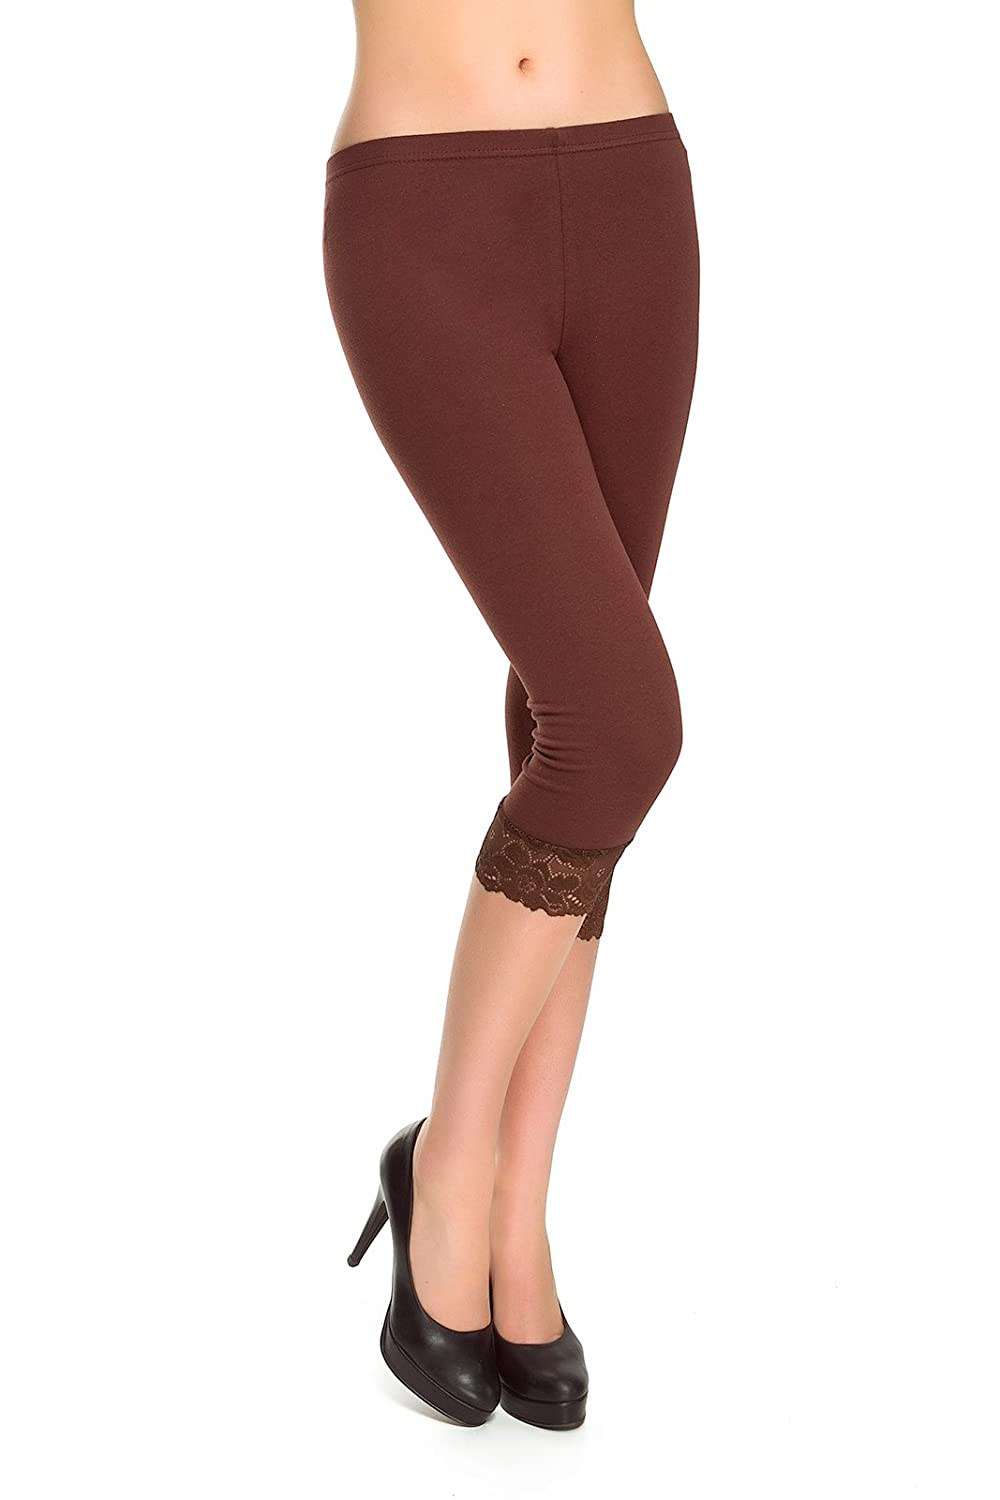 MITAAMI Women's Cotton Leggings with Lace Trim Edges Size 8-22 UK MDLCE